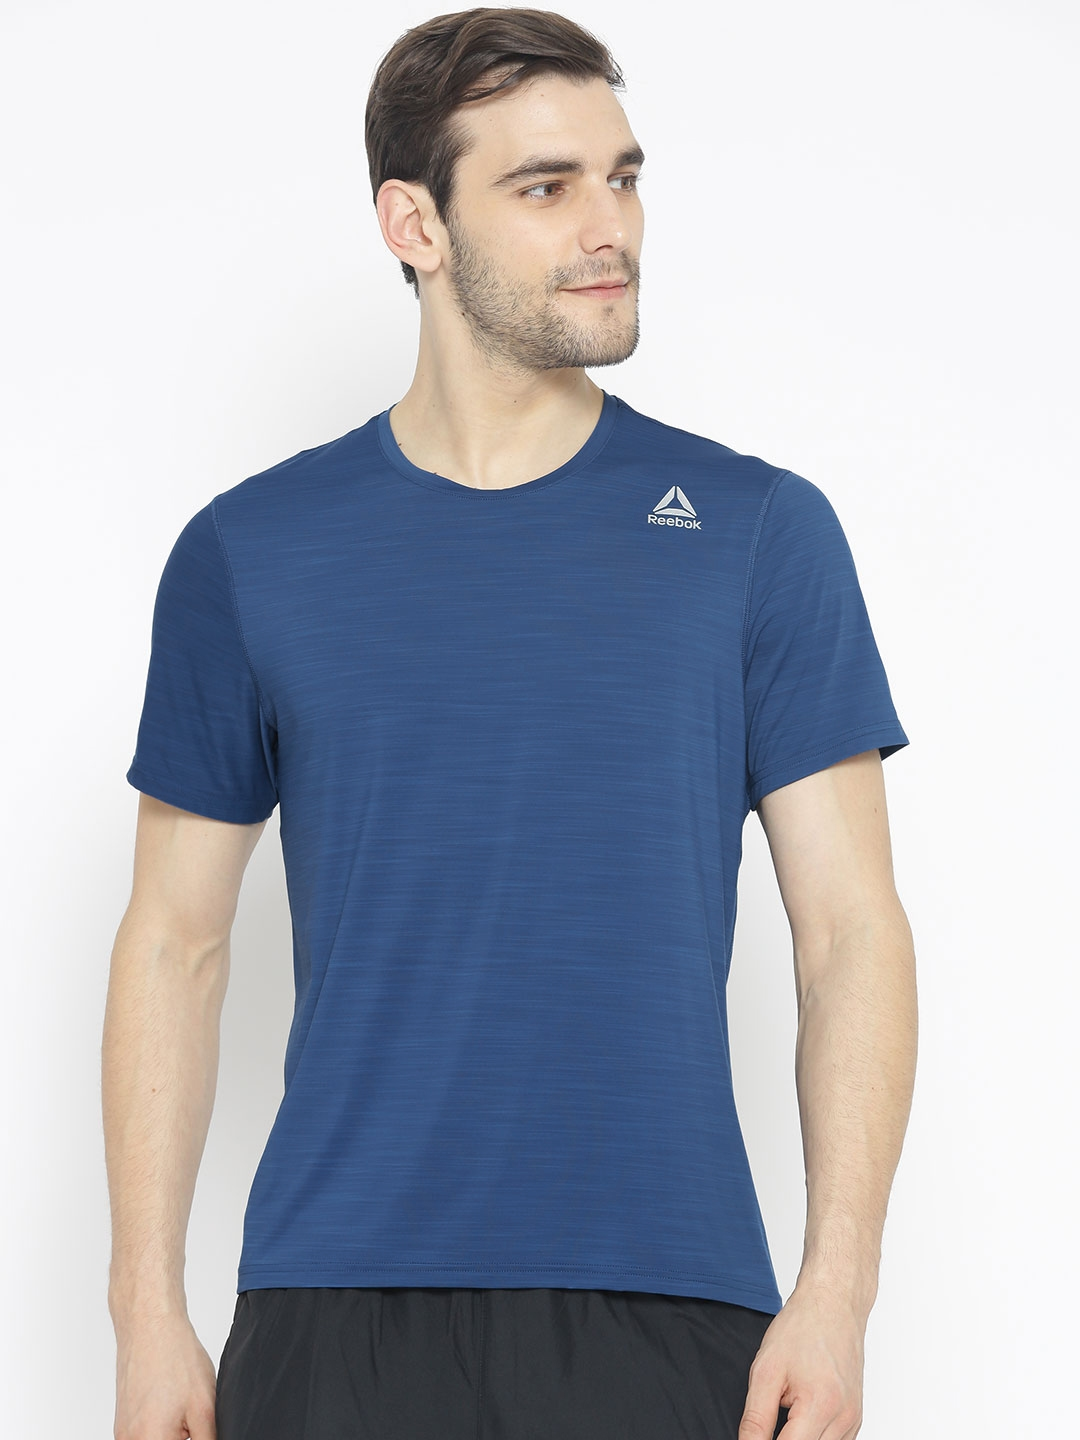 Reebok Mens Ss Active Chill Tee